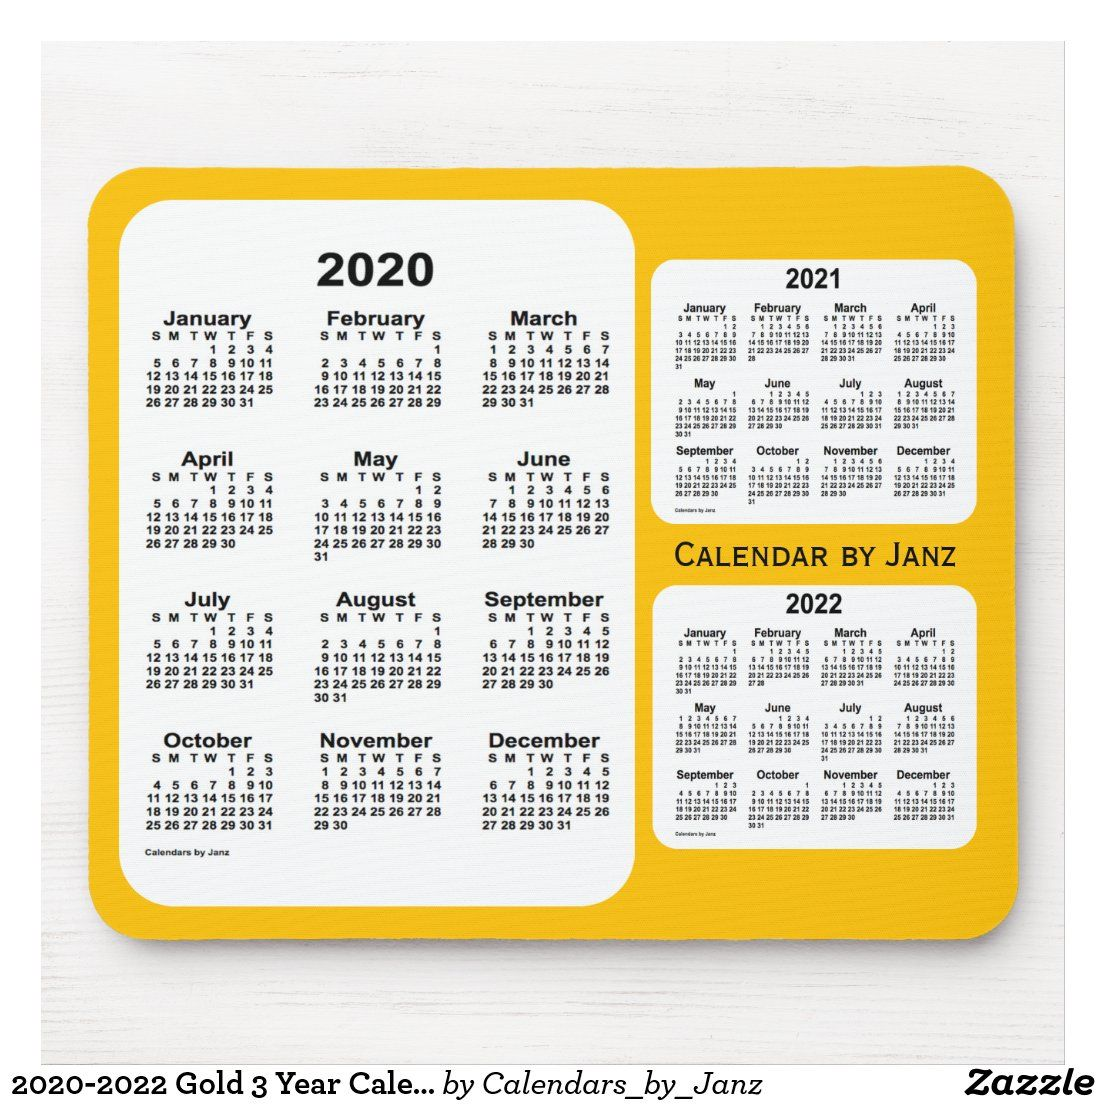 2020 2022 Gold 3 Year Calendar By Janz Mouse Pad Zazzle Com In 2020 Custom Calendar Calendar Design Calendar